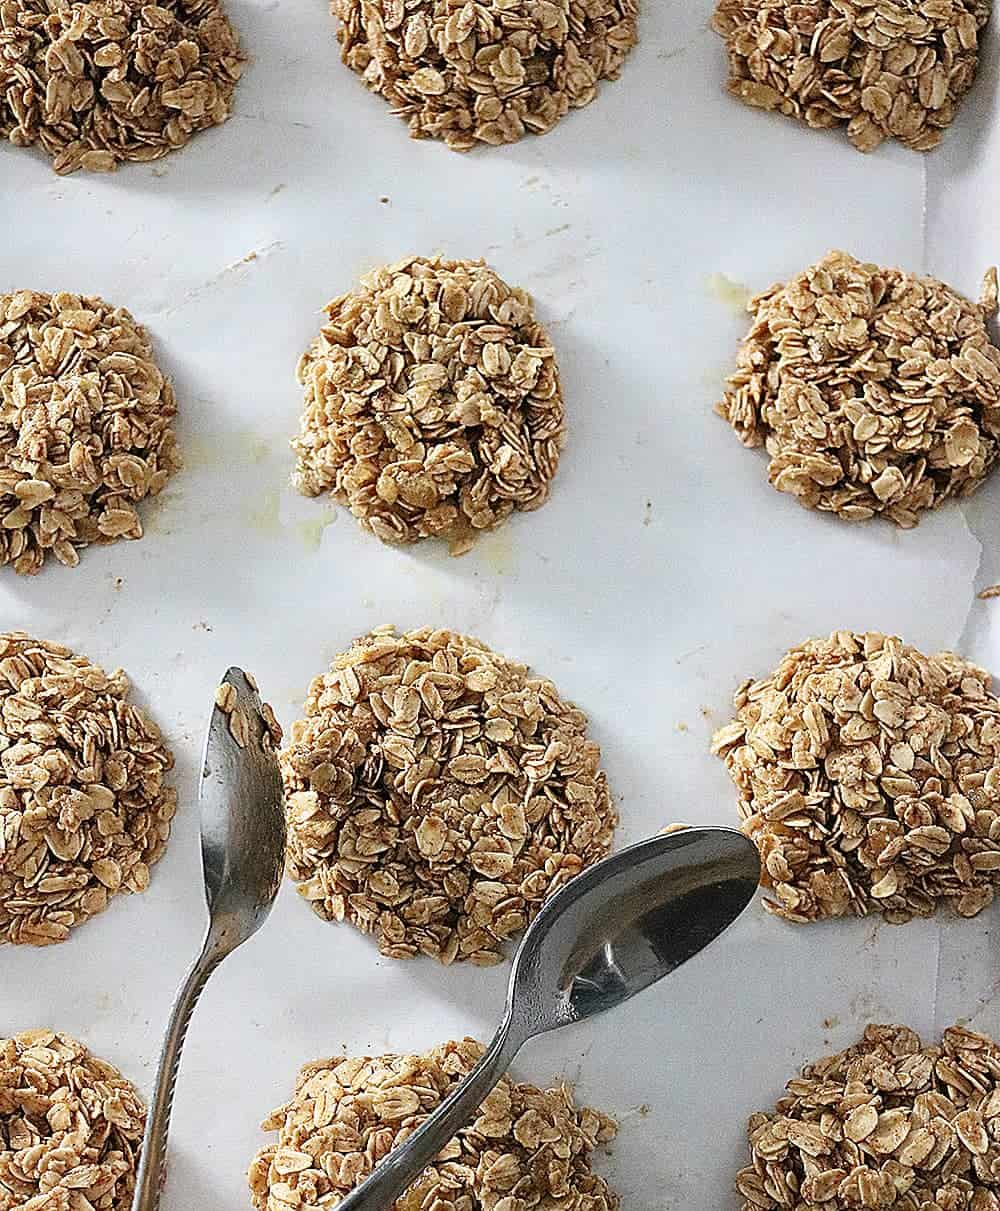 Ginger Granola Breakfast Cookies are a wonderful way to start the day. Oats, ginger, and plenty of cozy spices make 'em awesome.